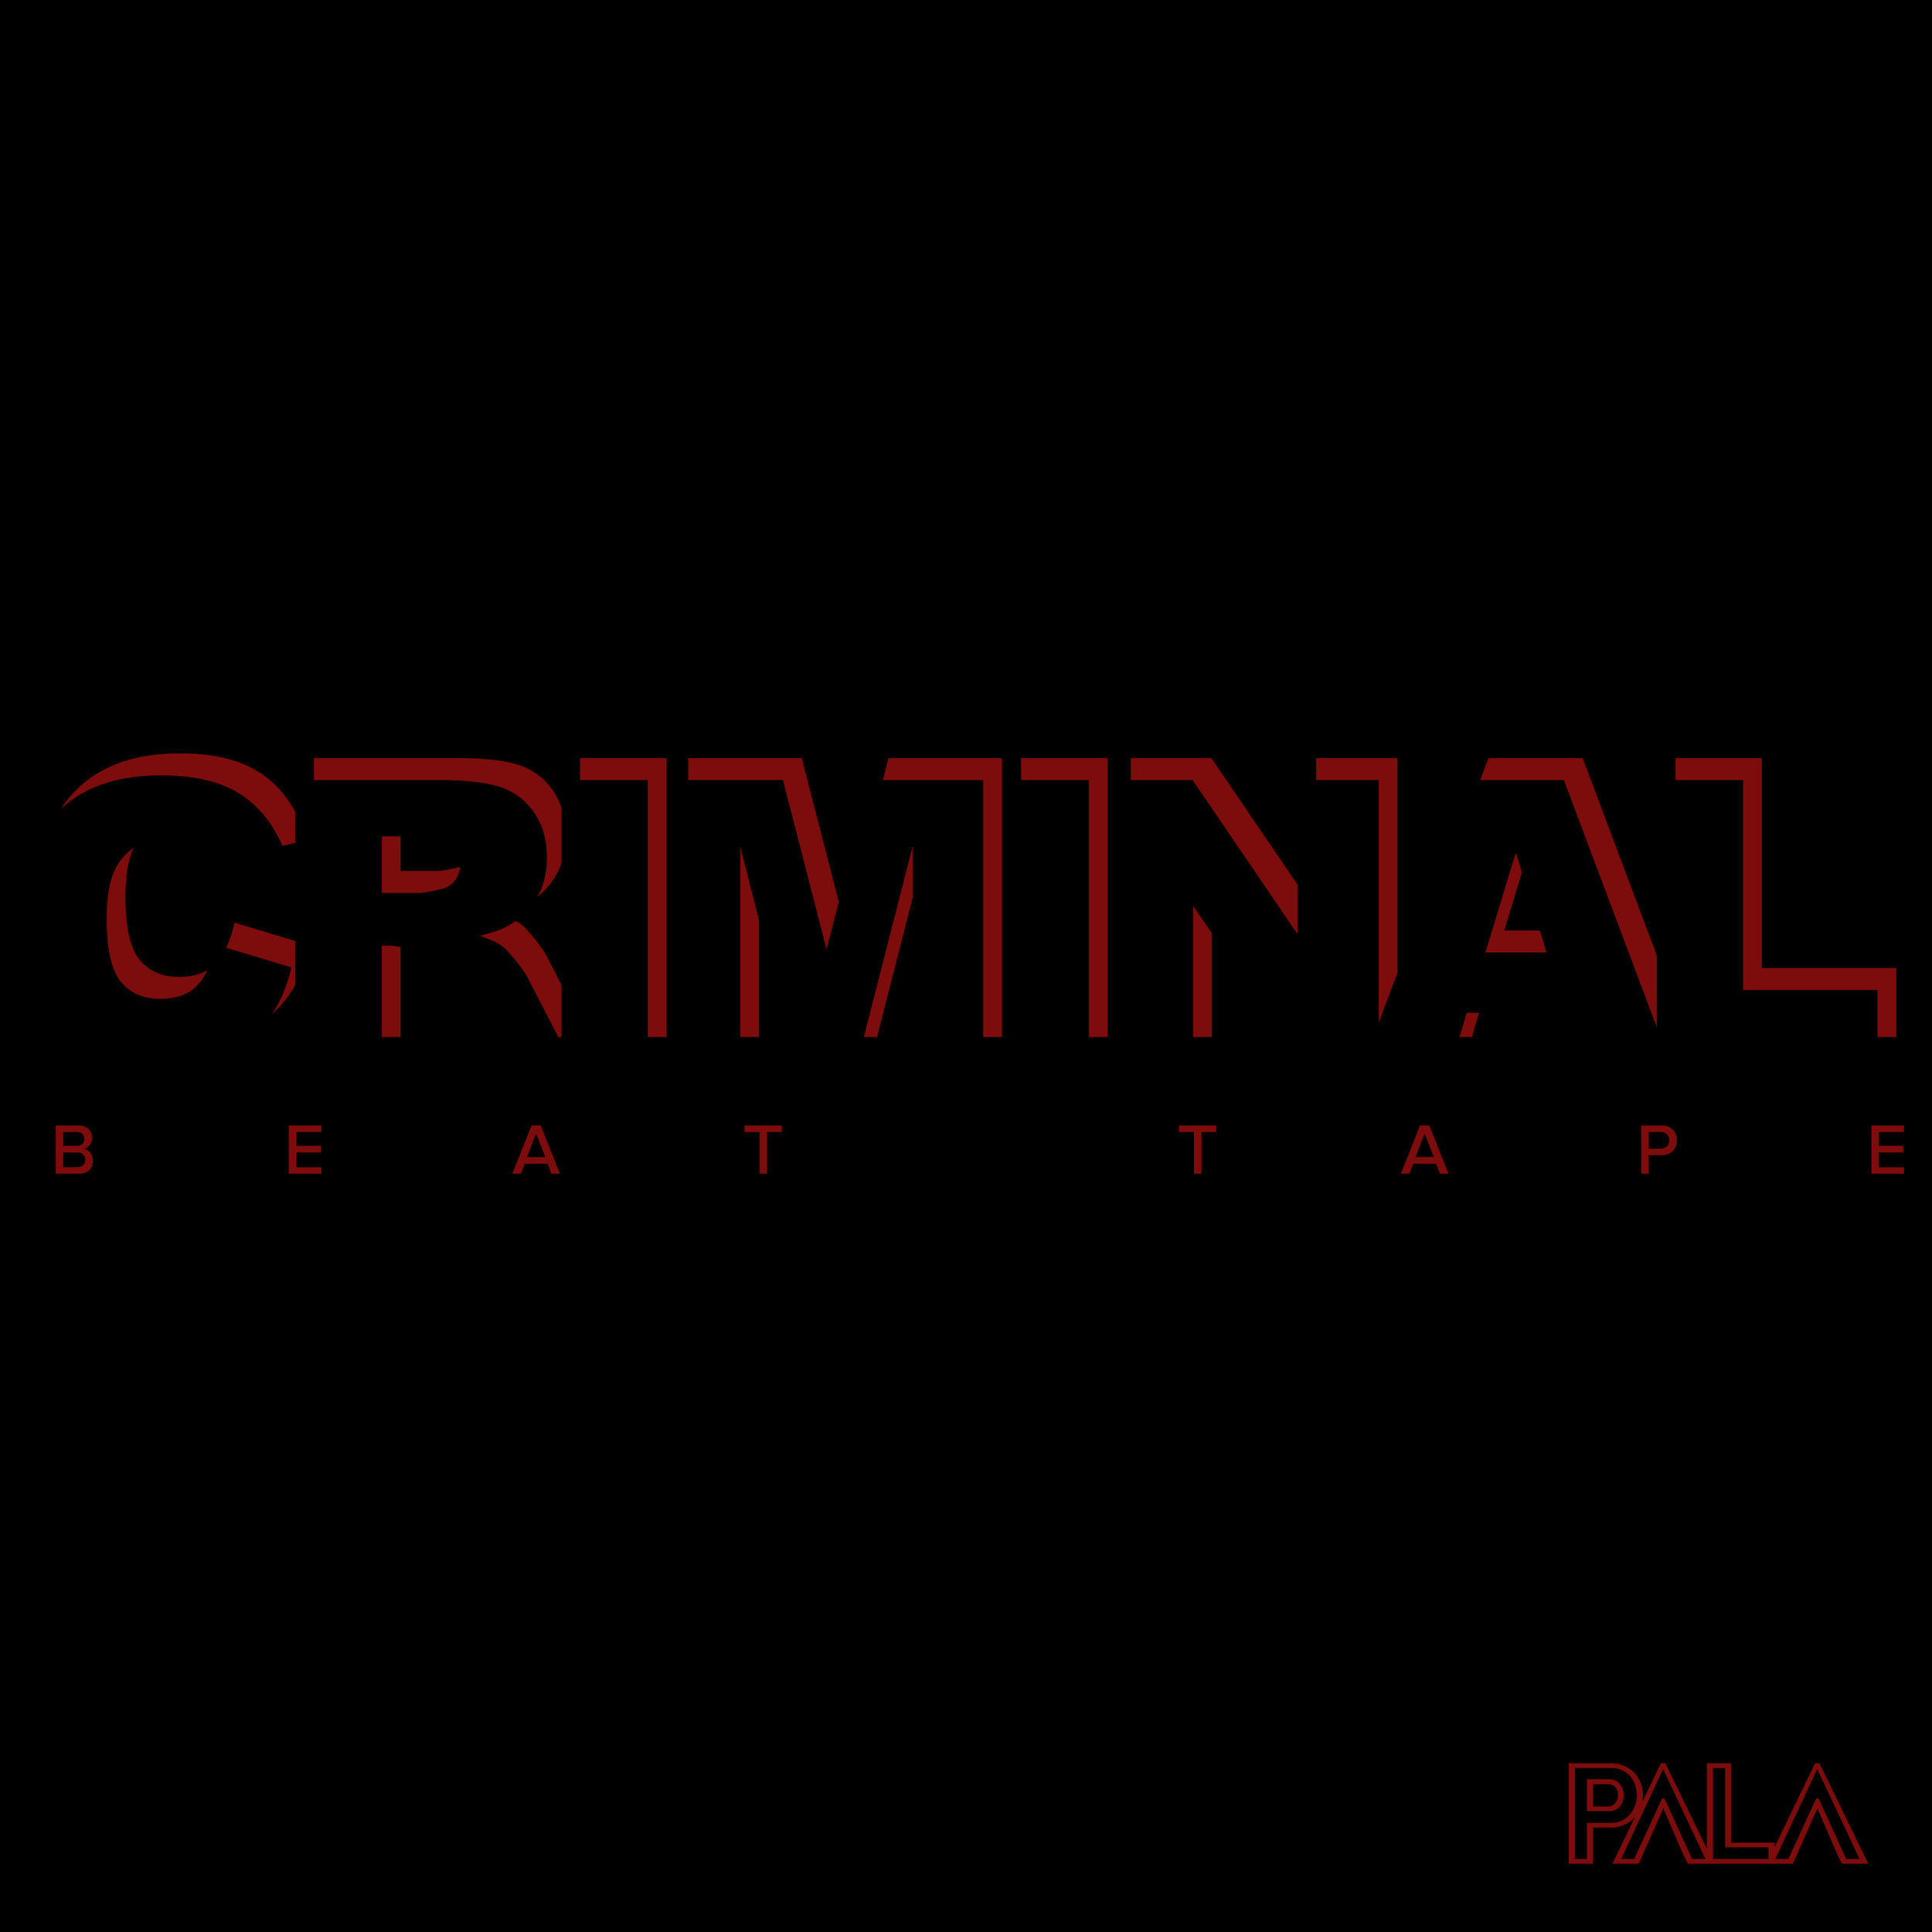 Cover artwork for CRIMINAL Beat Tape by PALA